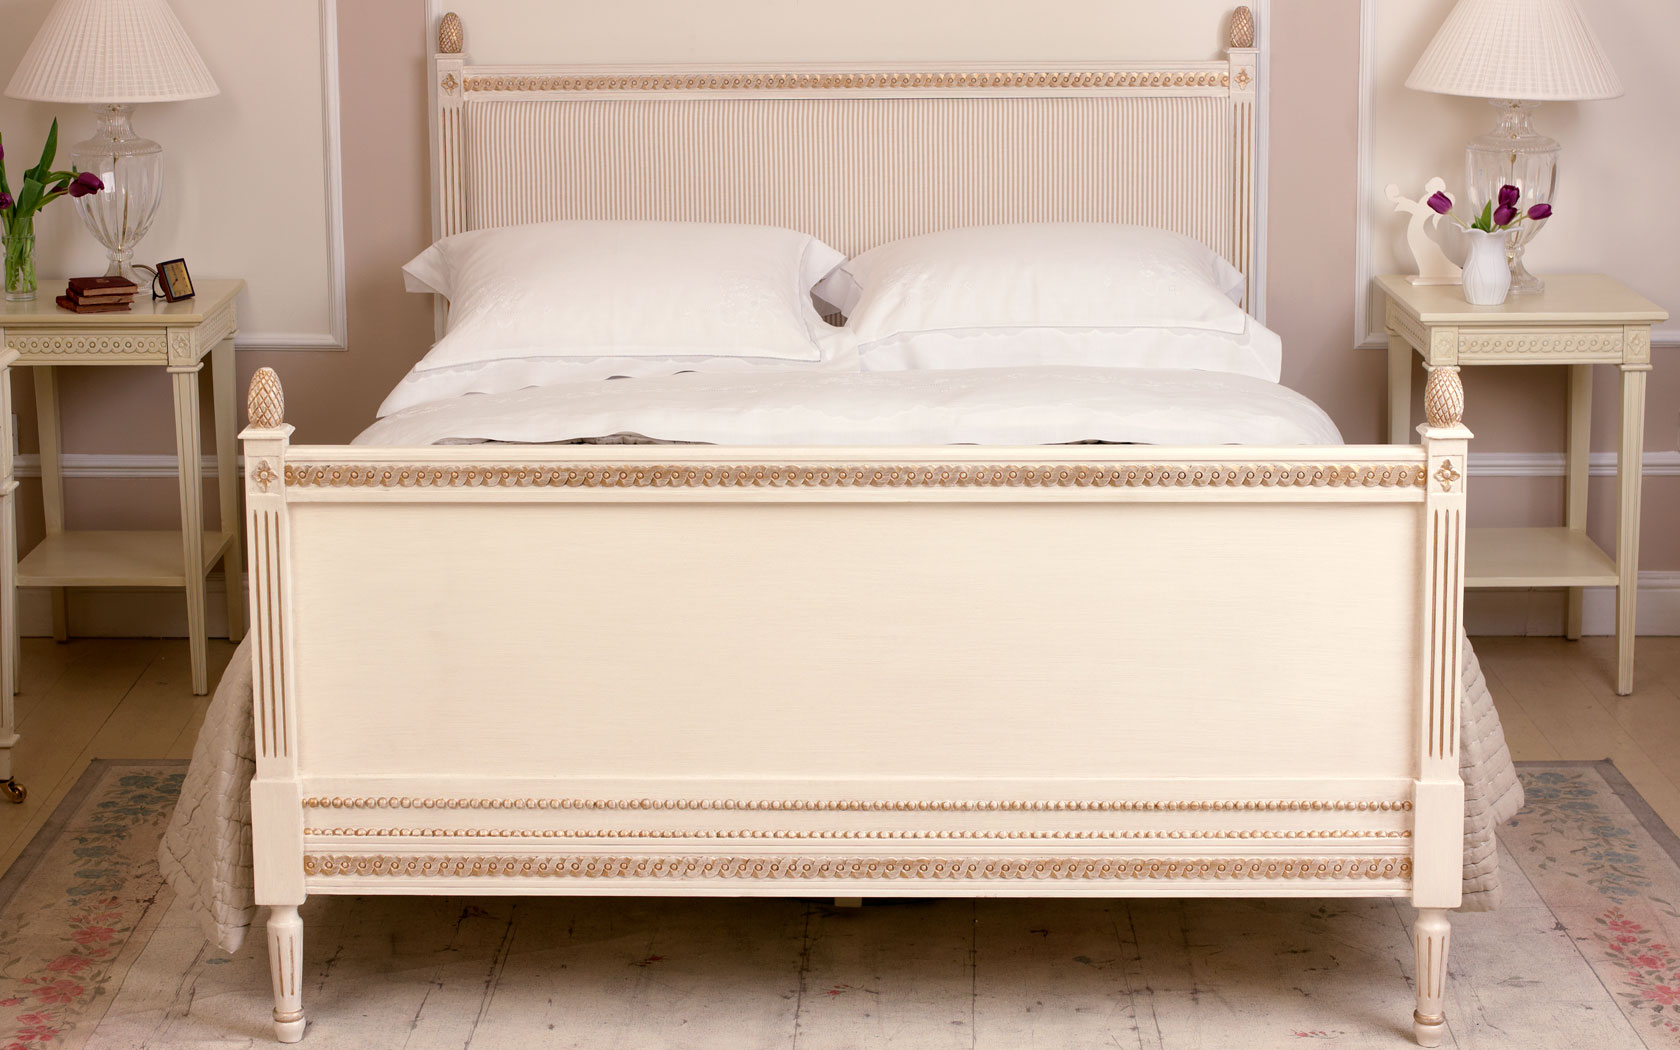 http://features.nordicstyle.com/wp-content/uploads/gustavian_bed.jpg